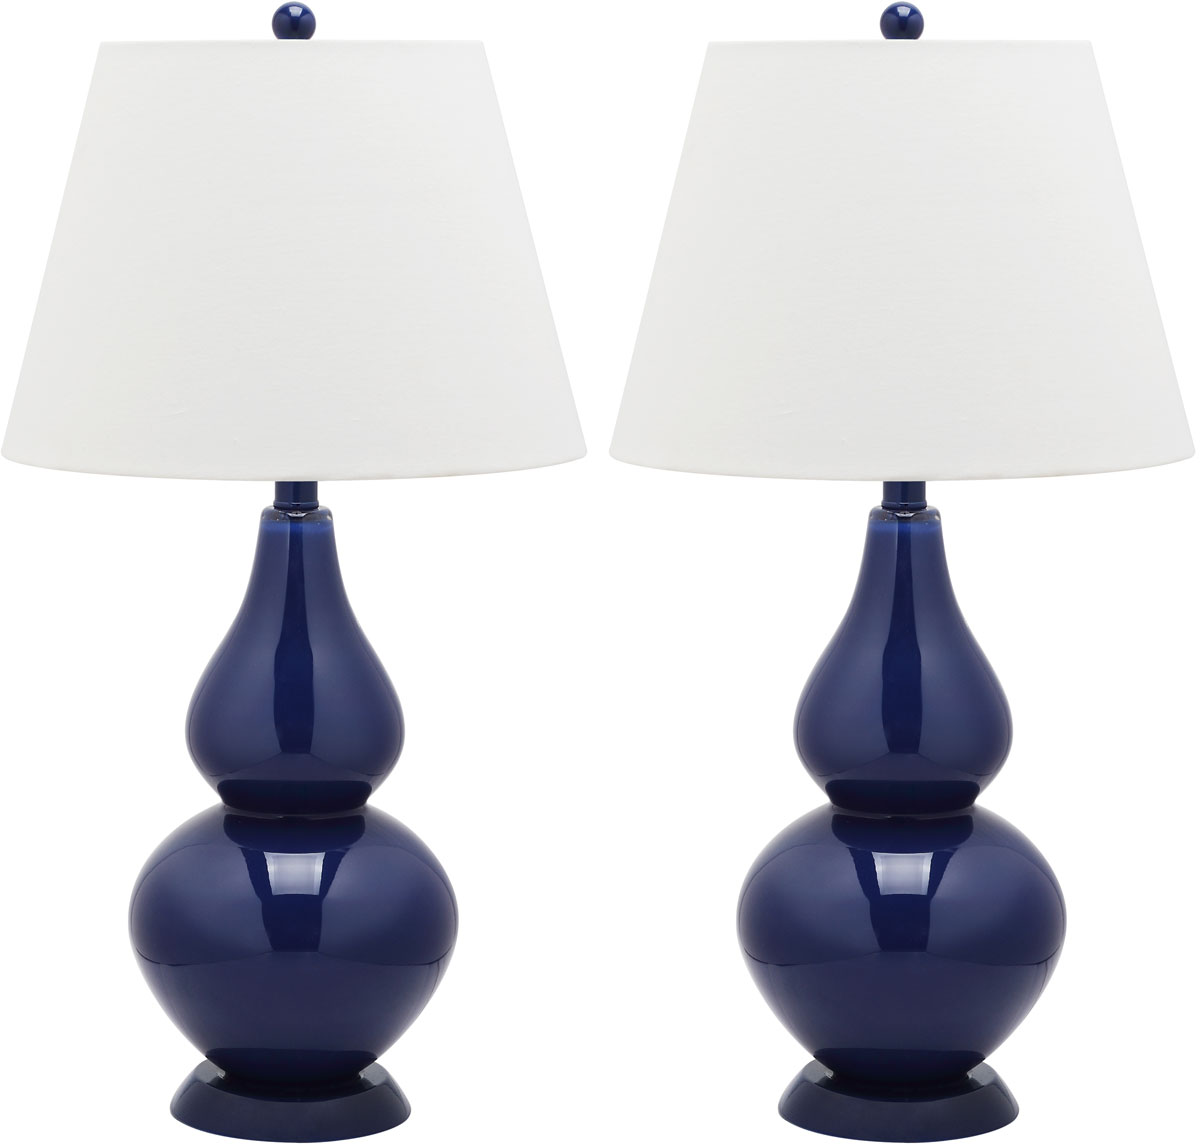 LIT4088B-SET2 Table Lamps - Lighting by Safavieh